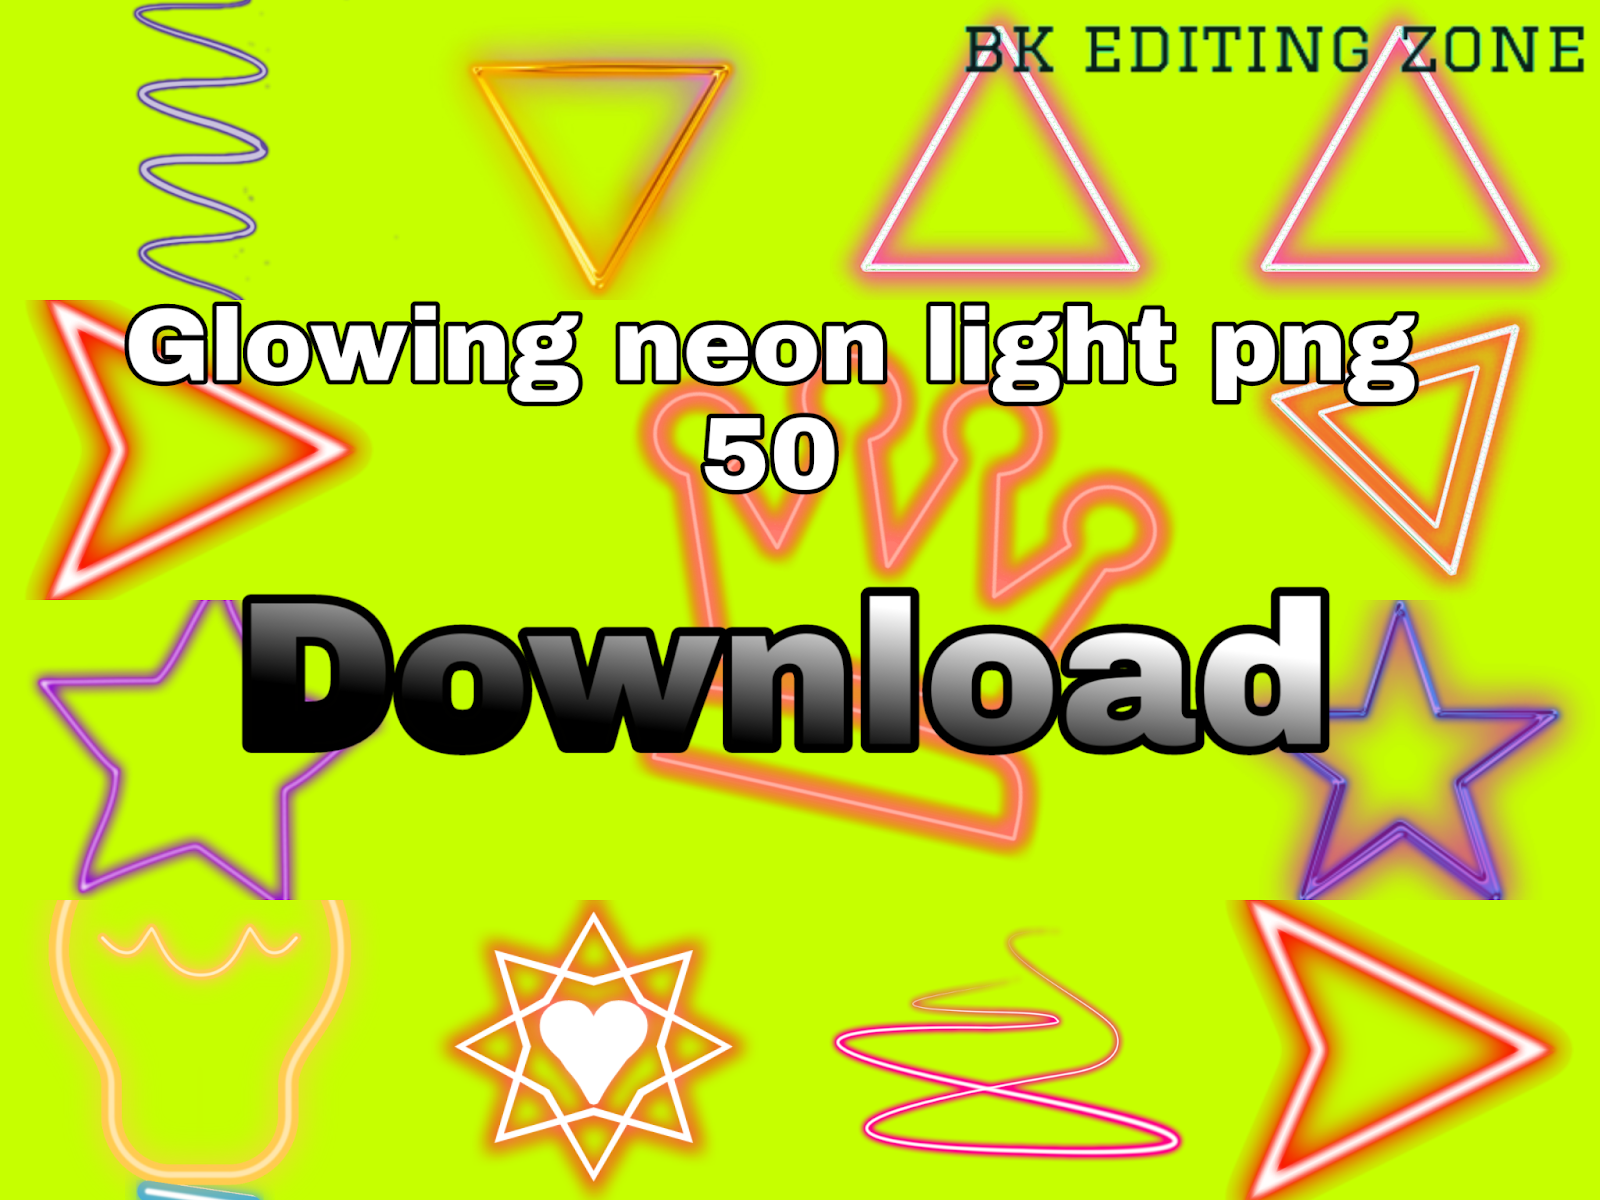 New neon light png ~ Bk editing zone